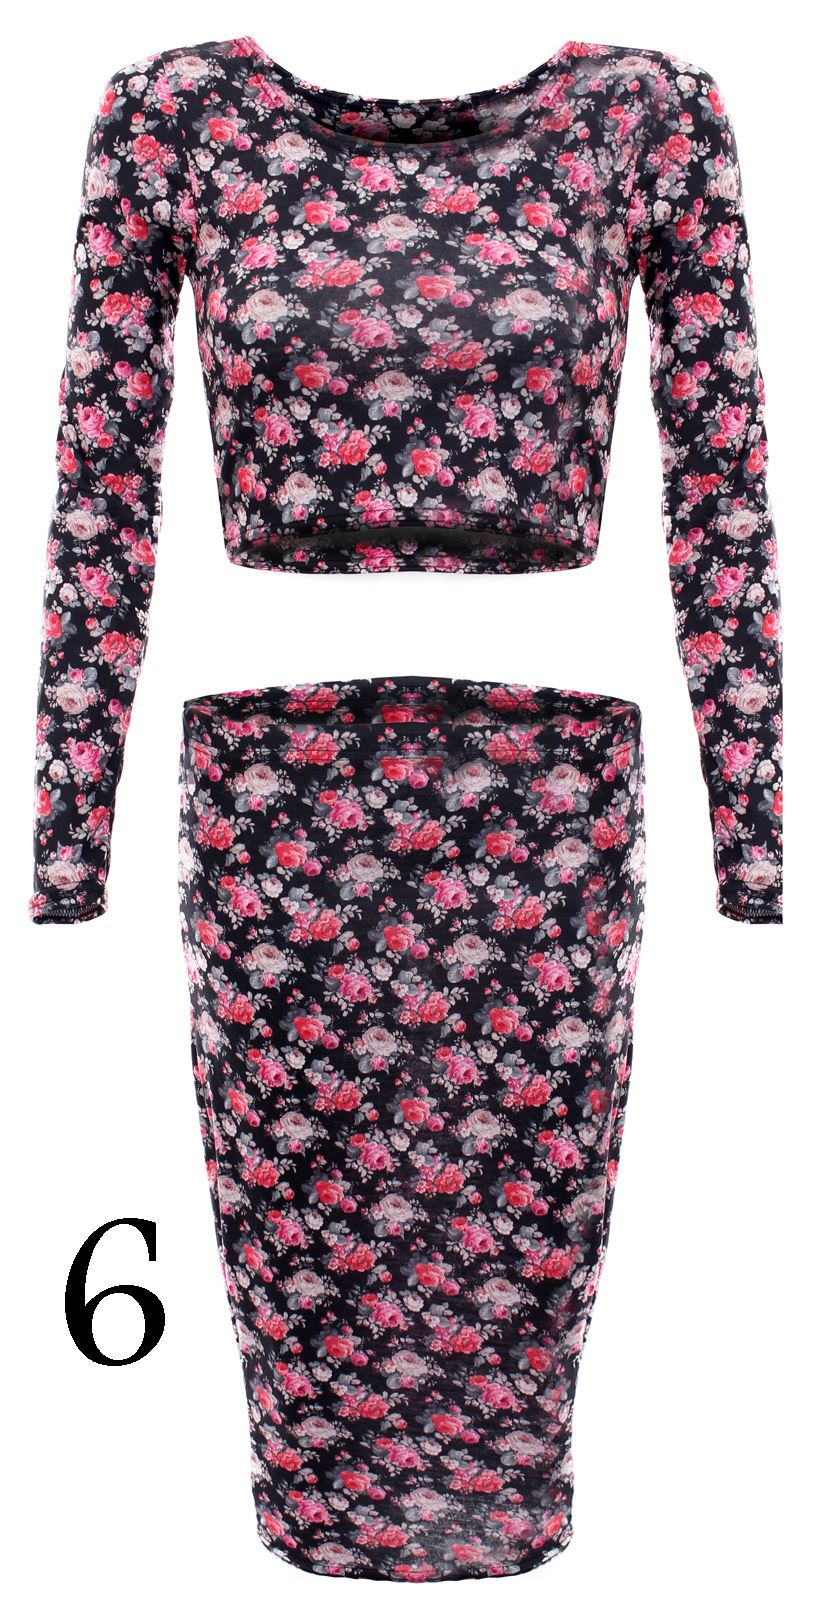 LADIES-WOMENS-FLORAL-STRIPED-SKIRT-CROP-TOP-SET-CELEB-STYLE-BODYCON-TOWIE-DRESS